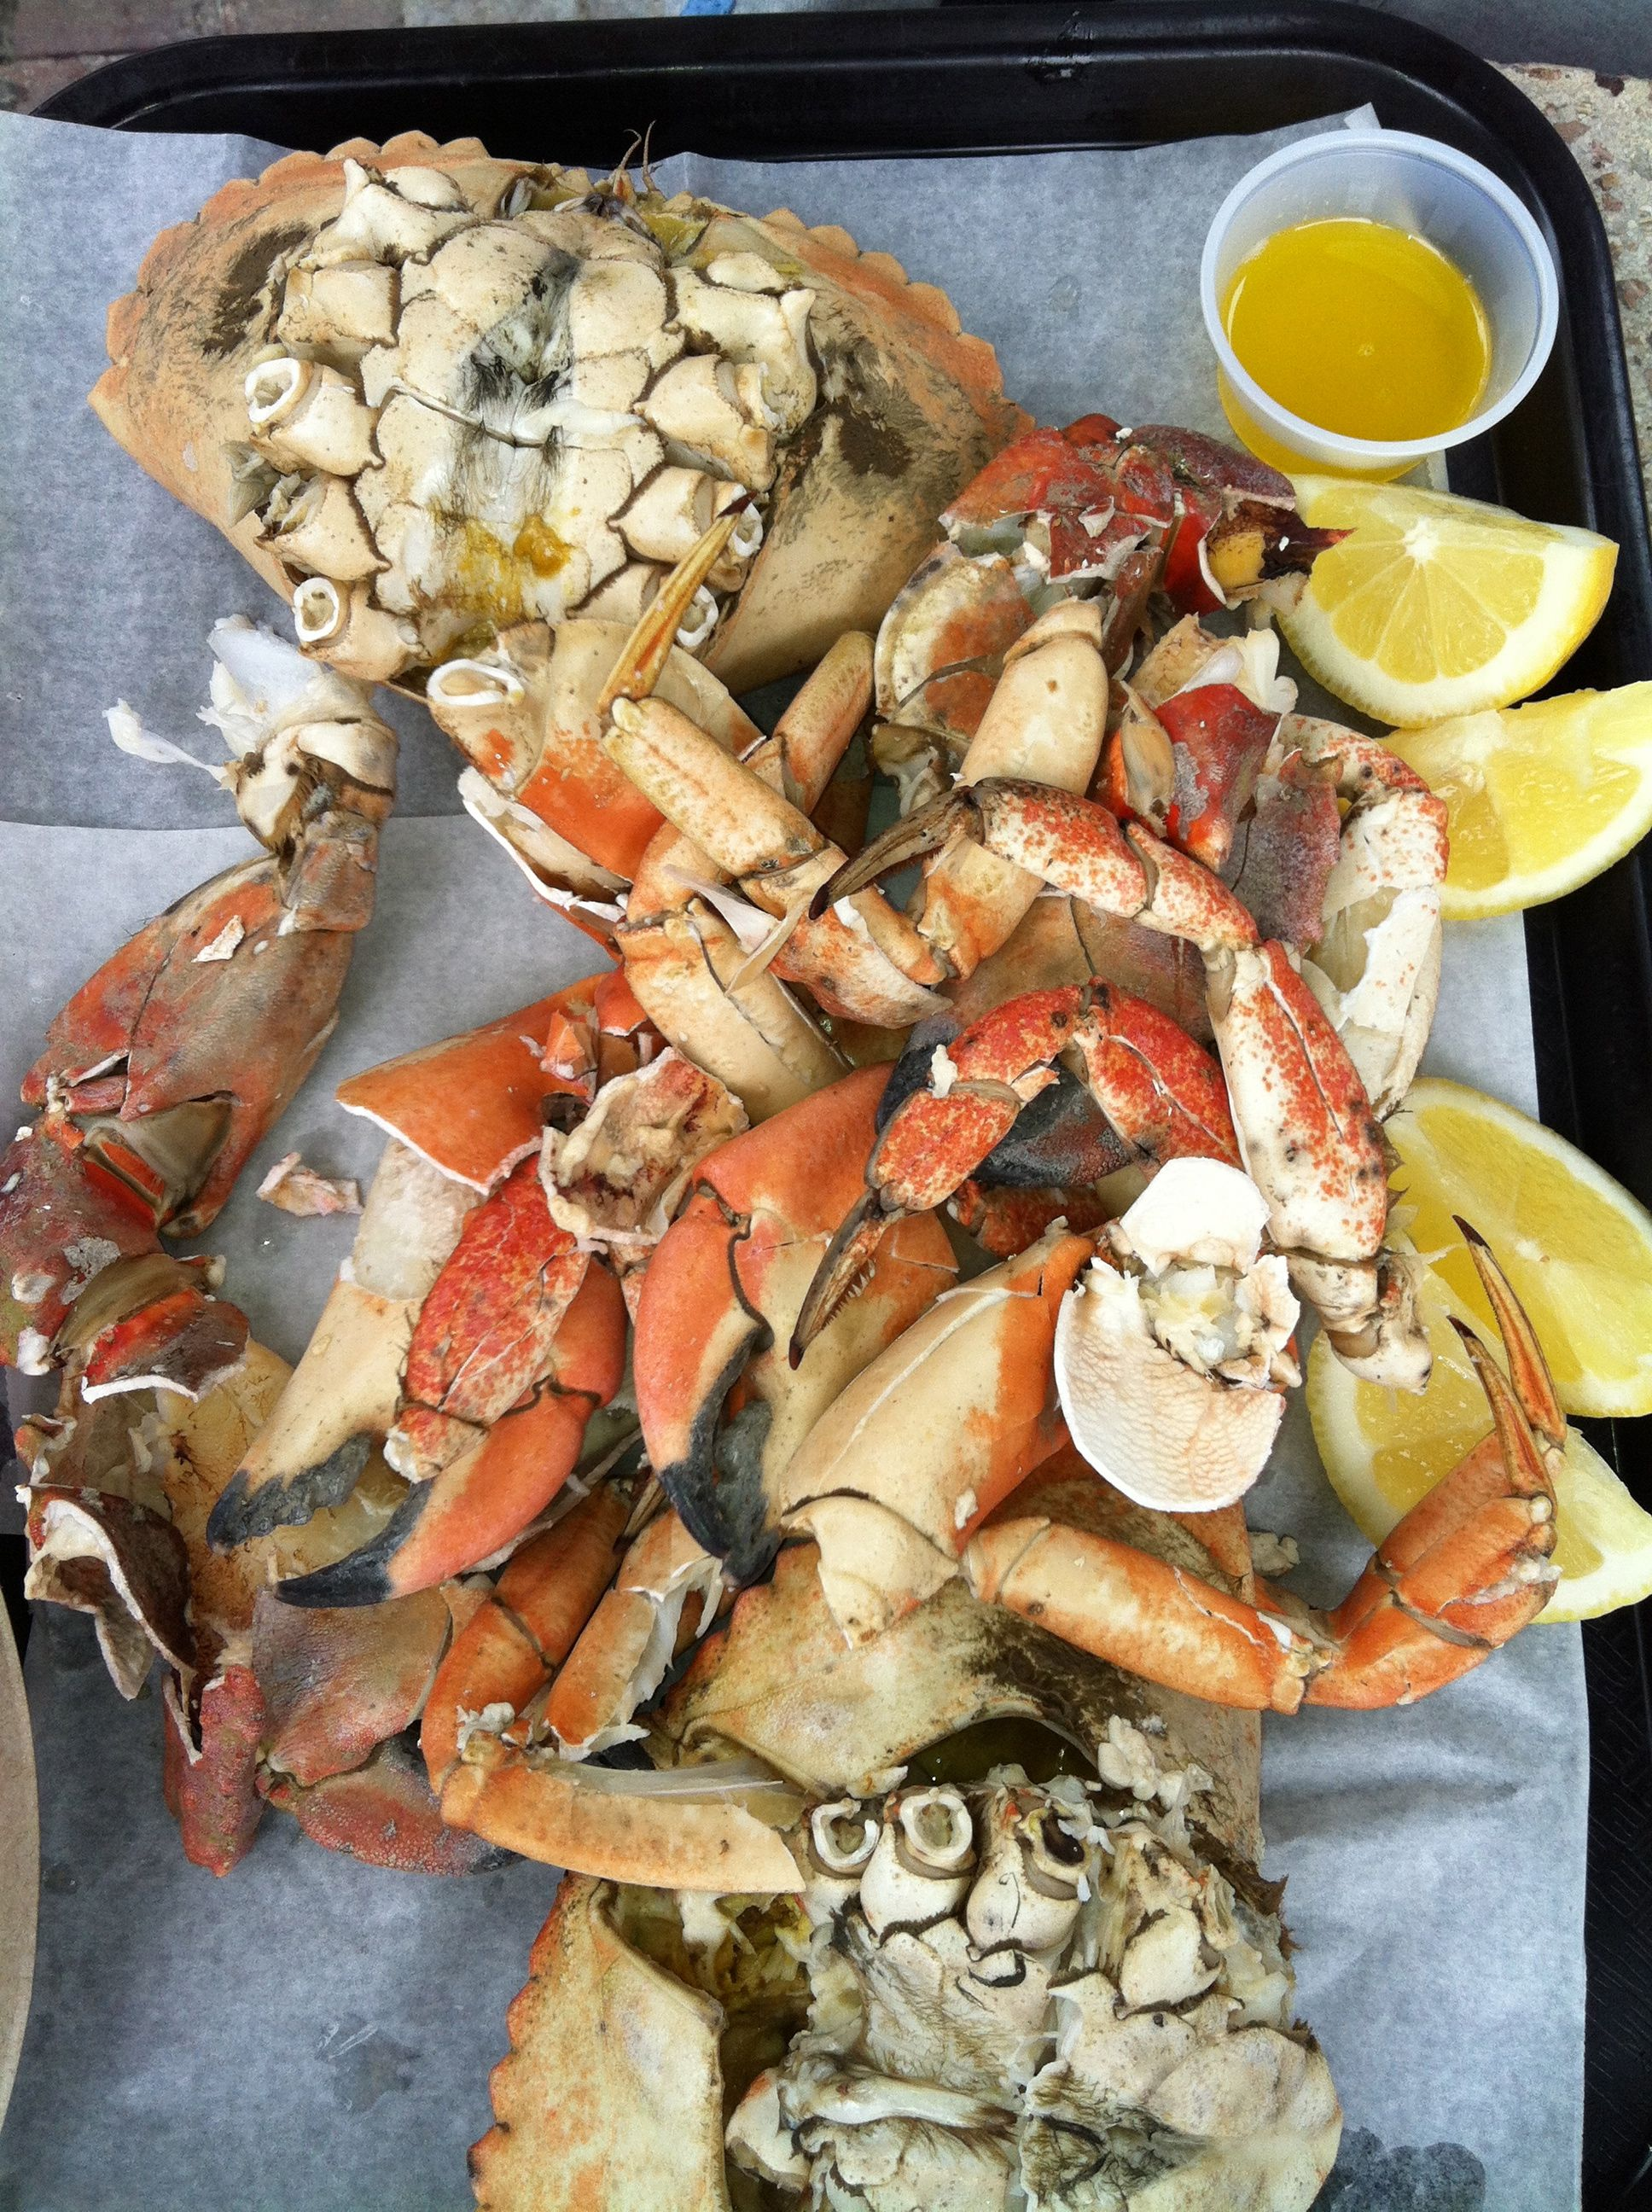 Rock crabs hc seafood channel islands oxnard ca food rock crabs hc seafood channel islands oxnard ca crab recipeschannel islandsfood foodcrabsseafooddatesdatingsea food forumfinder Choice Image